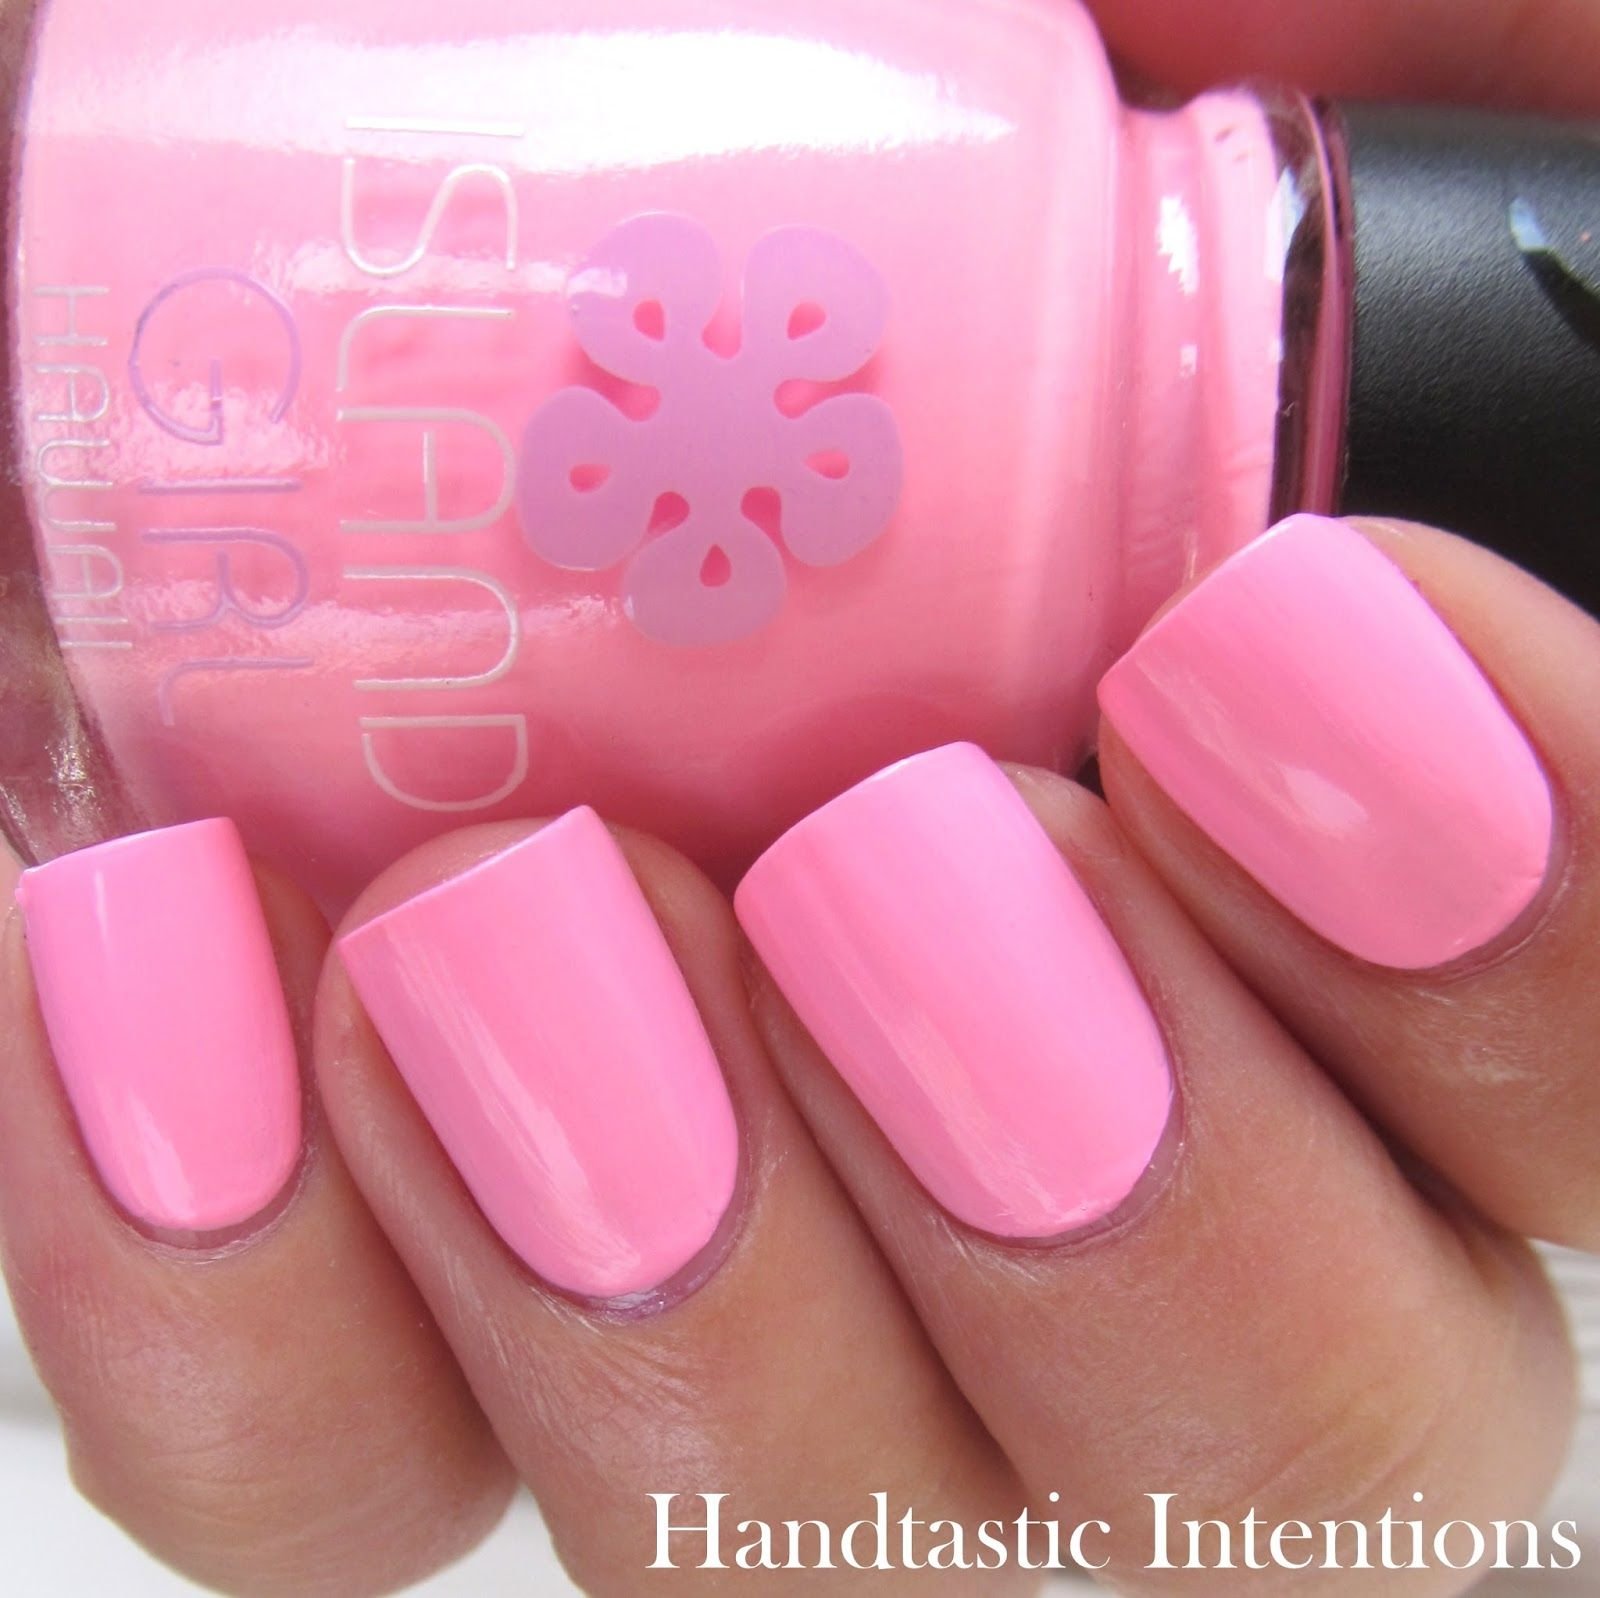 Handtastic Intentions: Swatch and Review of Island Girl Trio | Solid ...